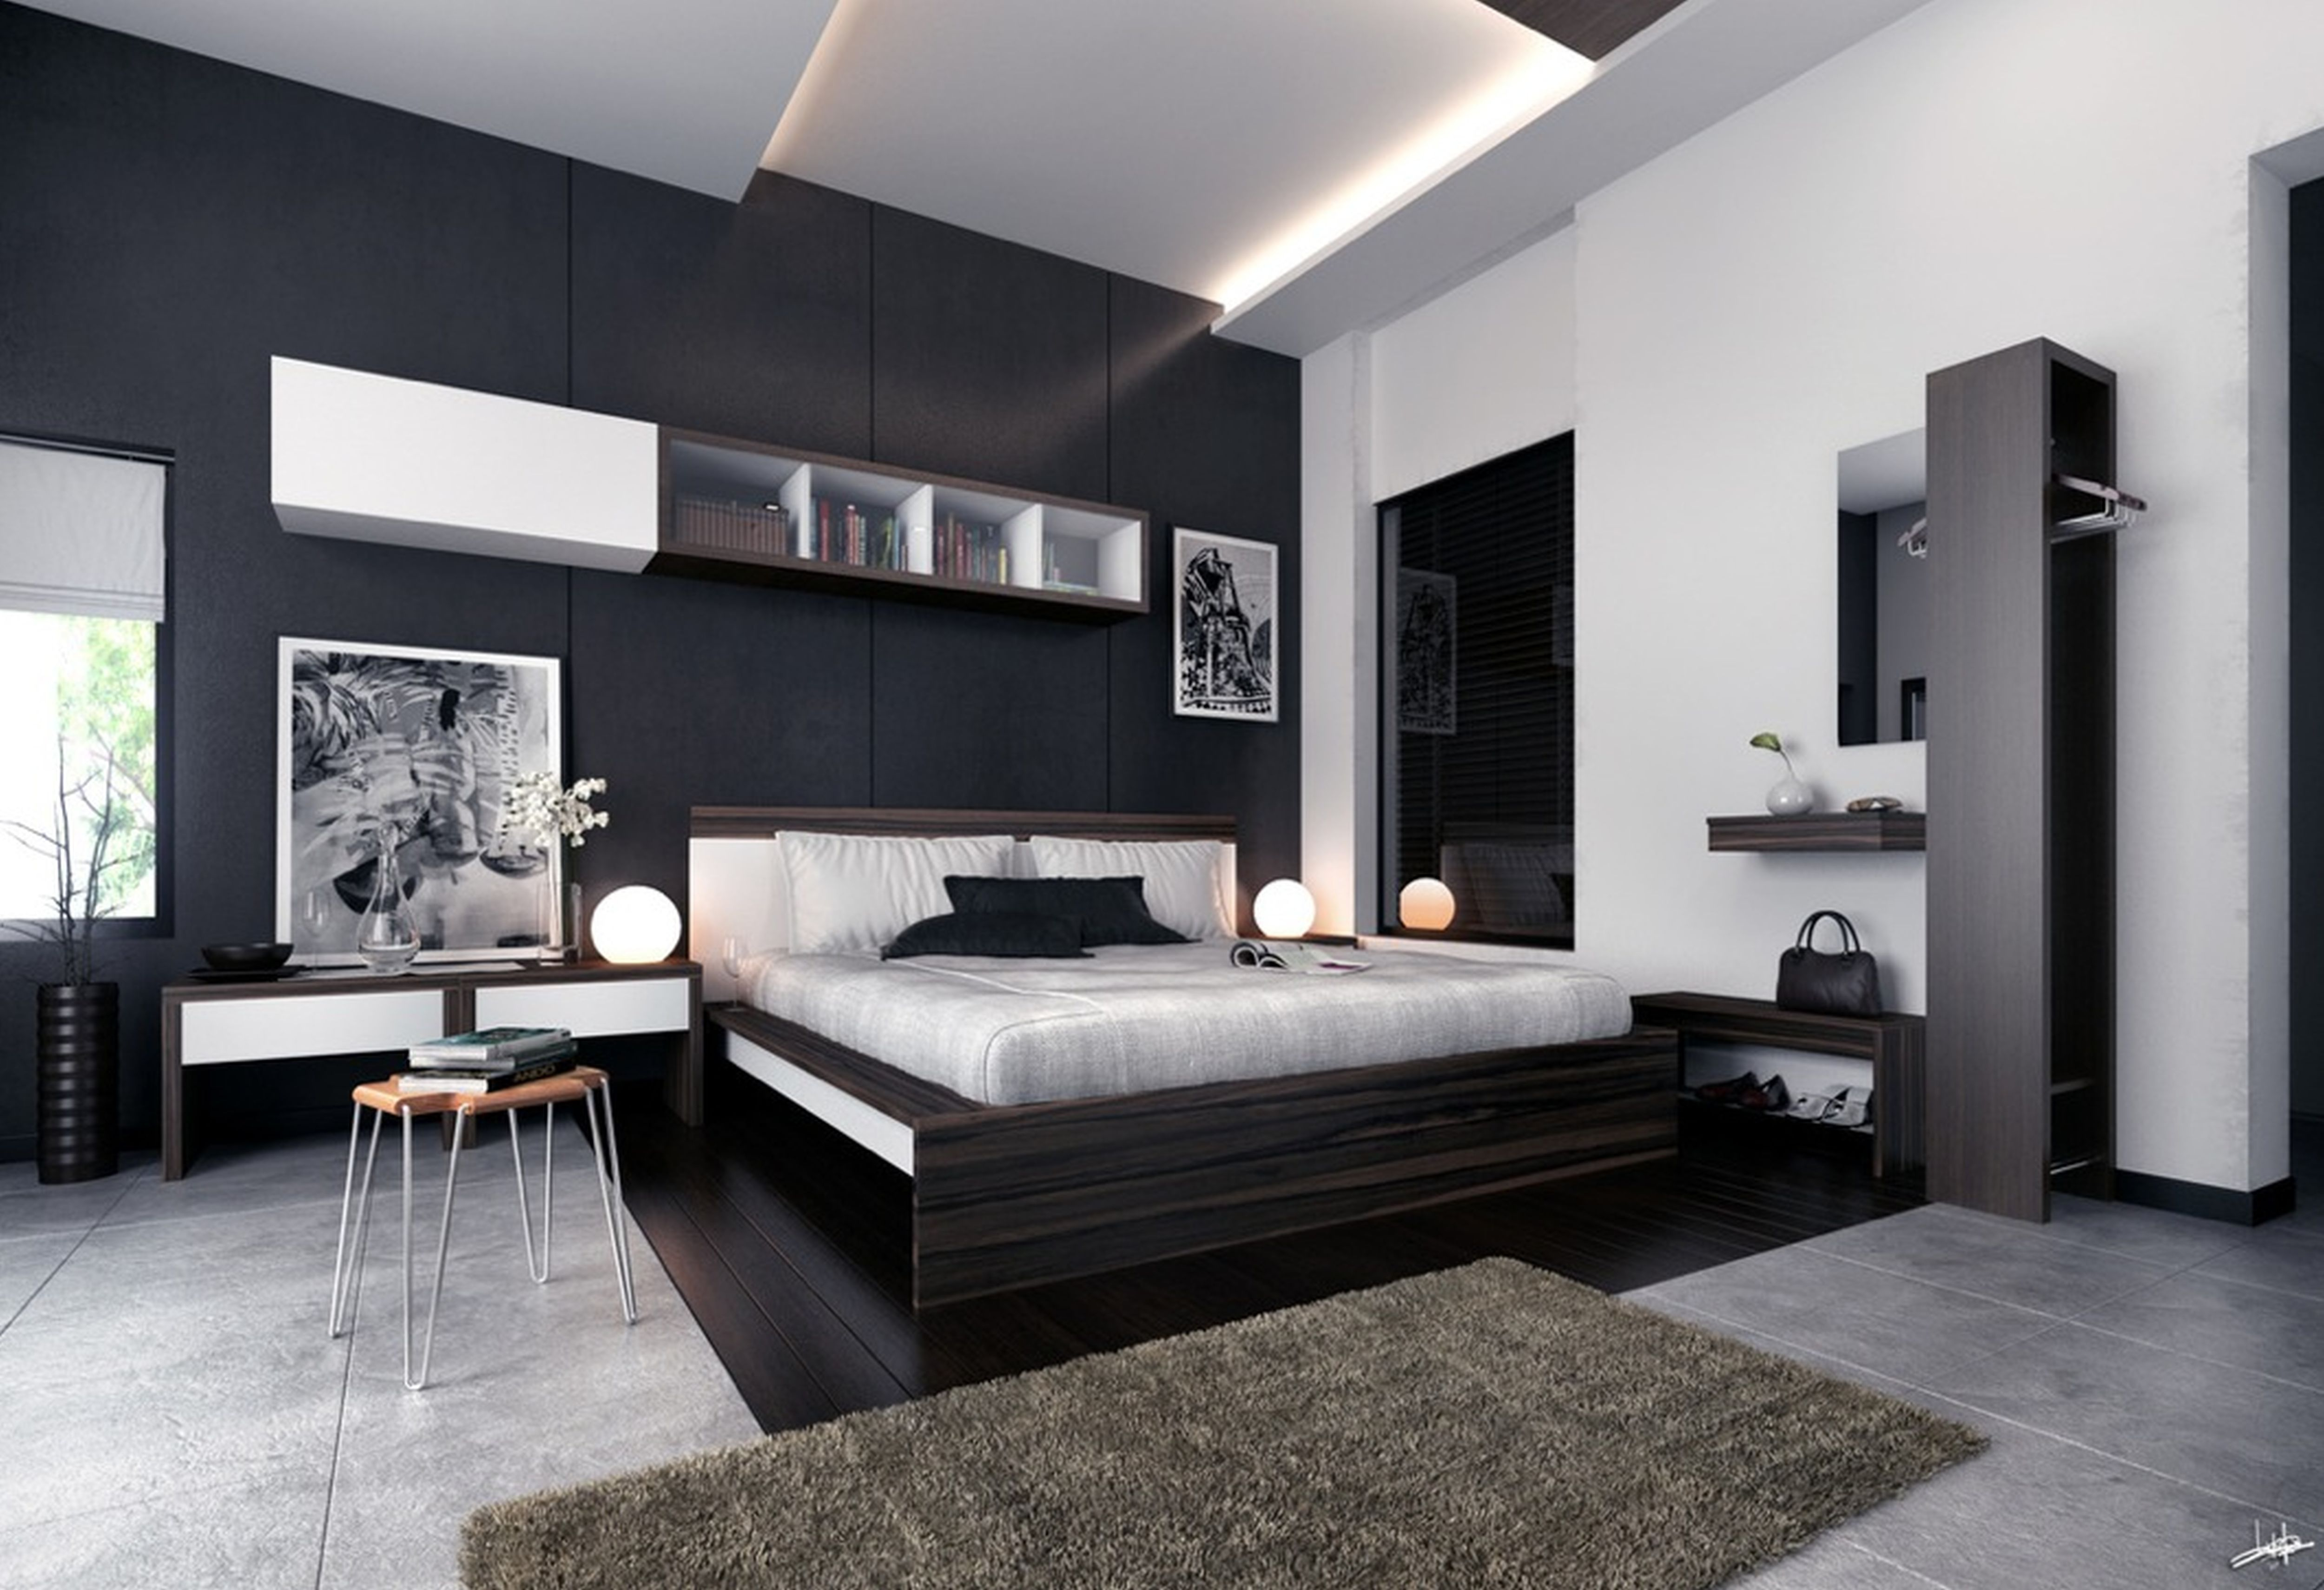 Modern Black And White Bedroom Ideas with 15 Awesome Ideas How to Improve Modern Ideas For Bedrooms